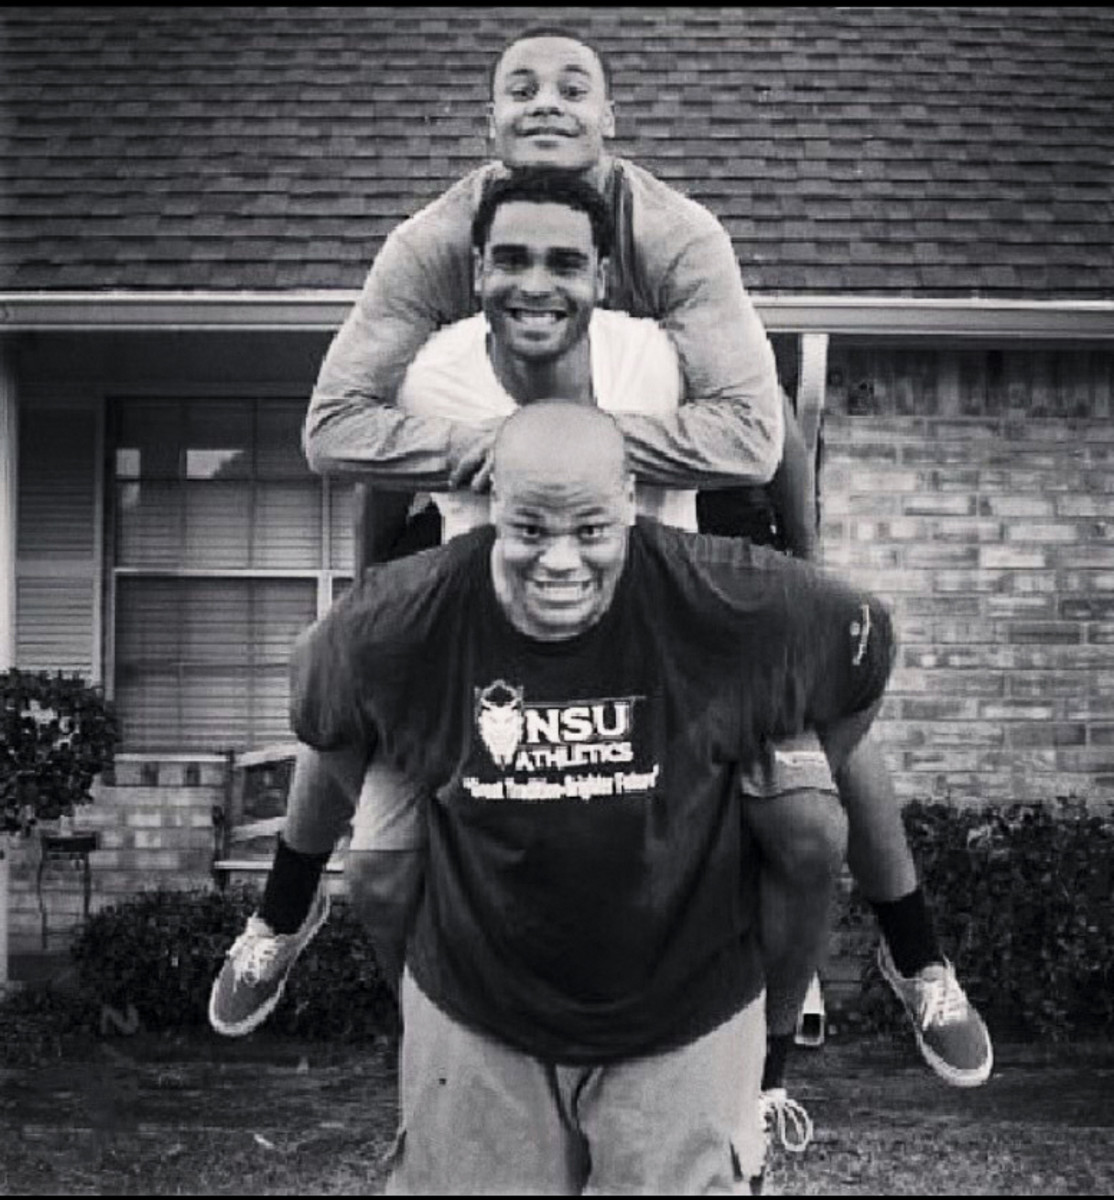 Jace Prescott carries brothers Dak and Tad on his back in a playful photo